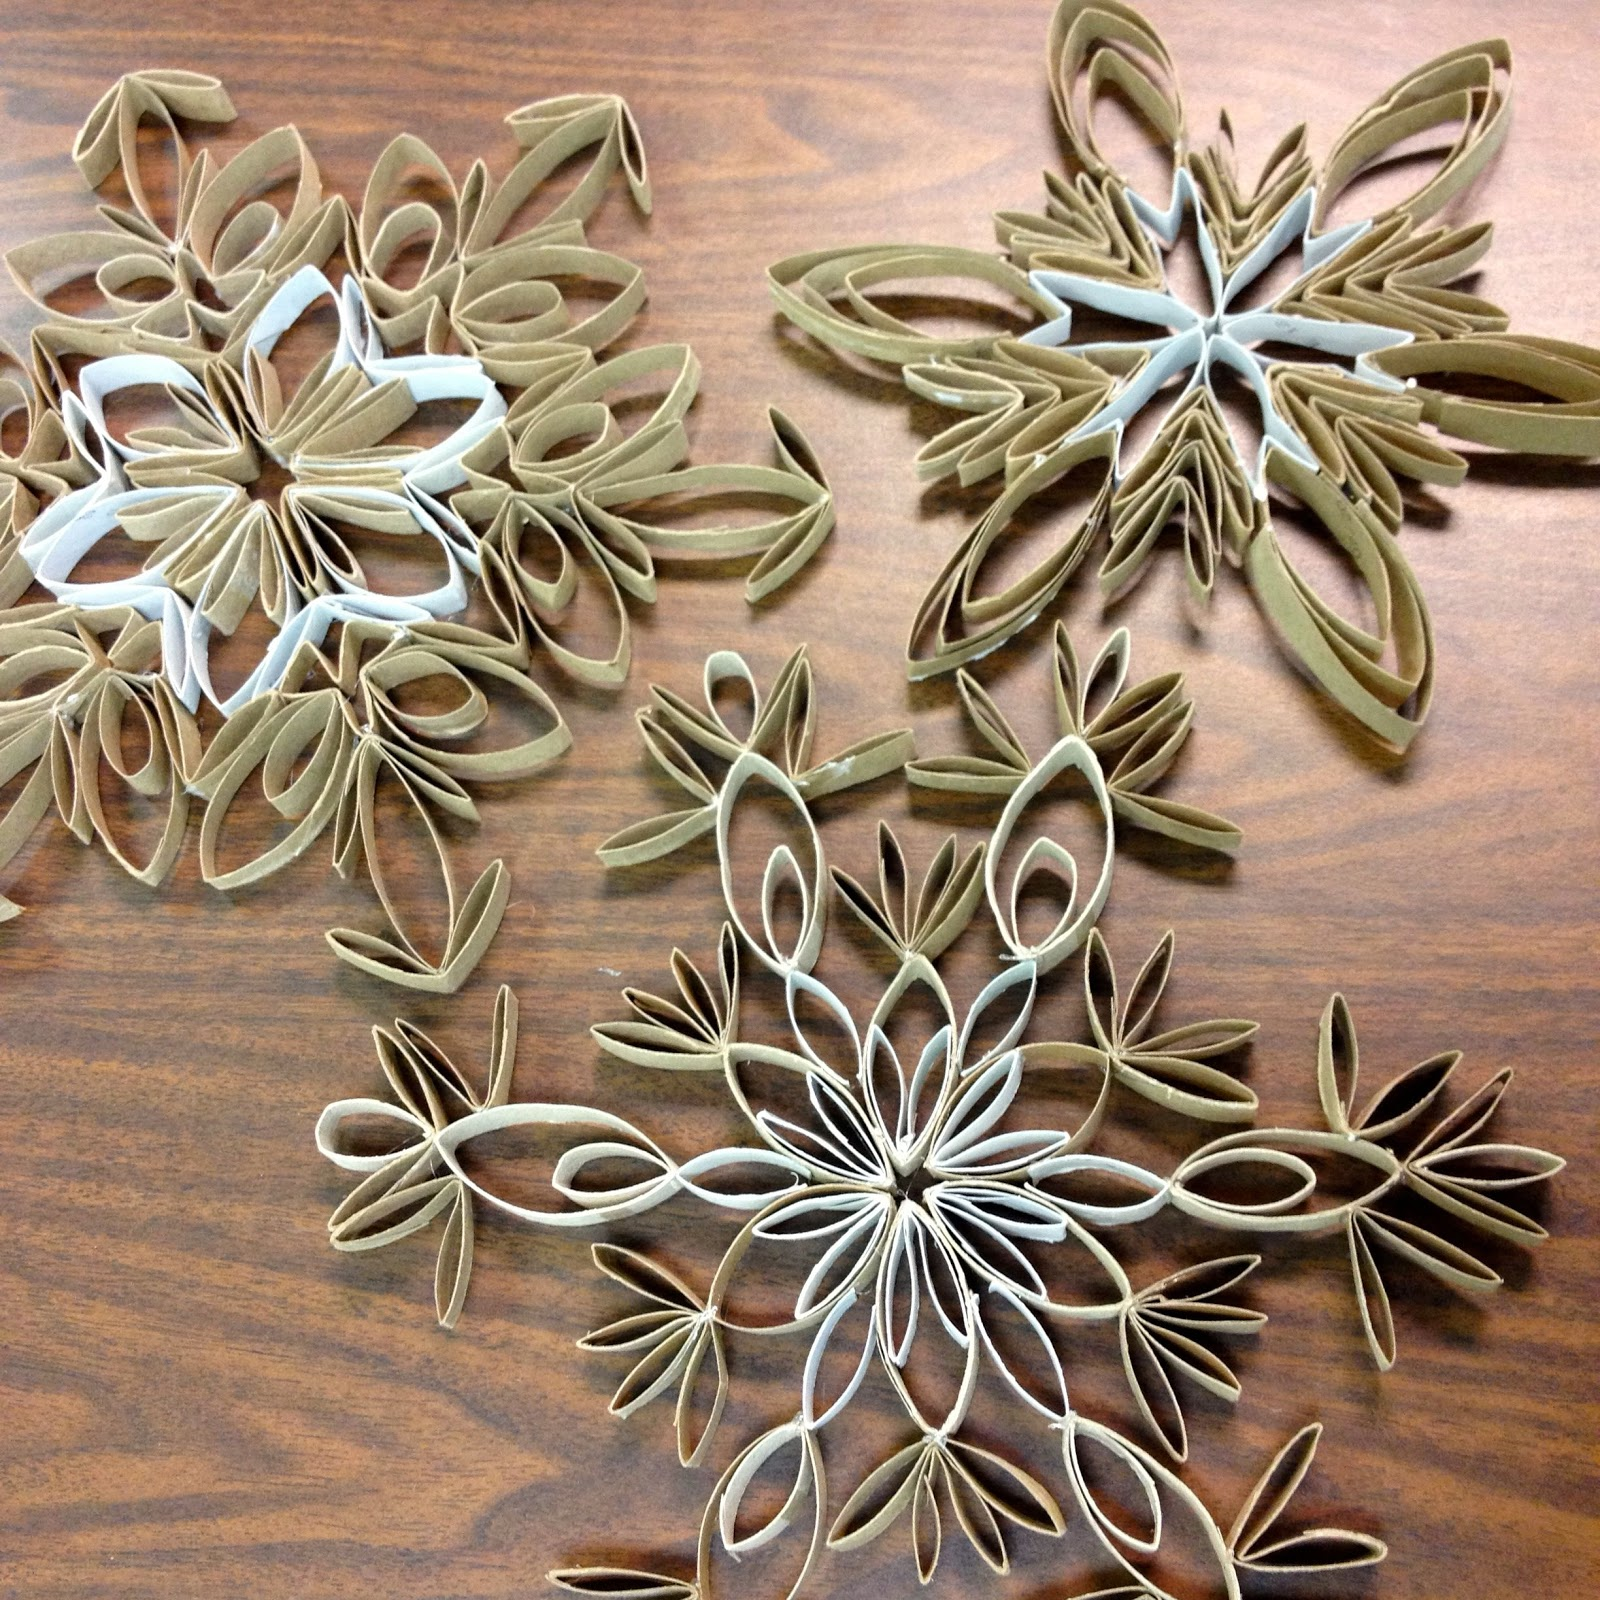 Larcie bird toilet paper tube snowflakes tutorial for Snowflake out of toilet paper rolls